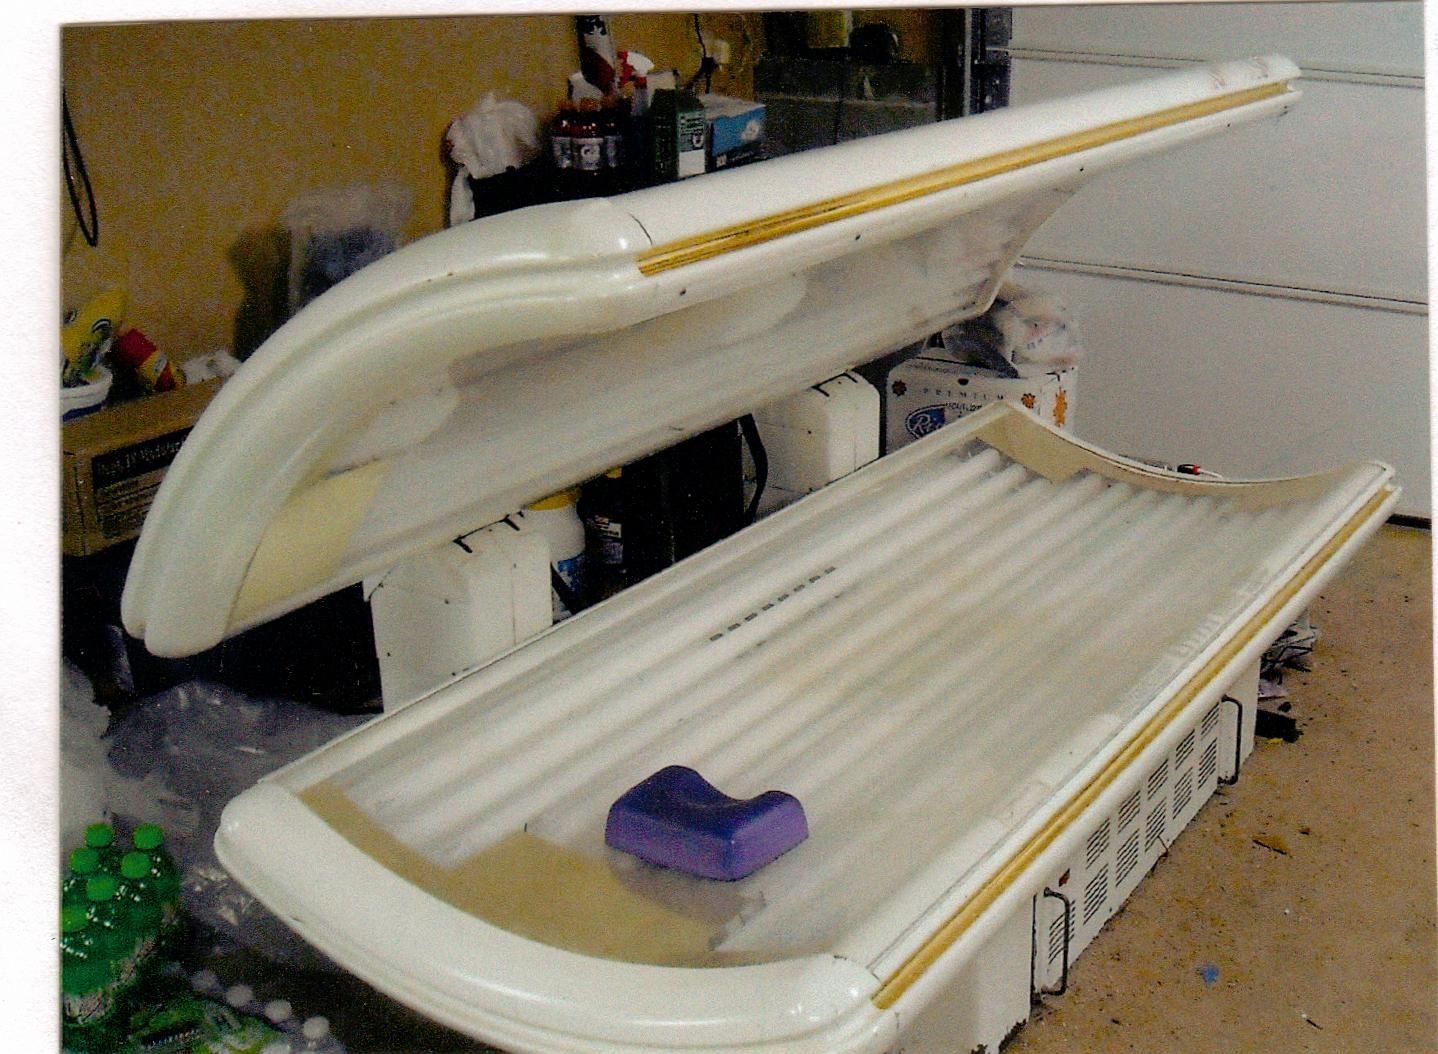 Sundash Tanning Bed In Tanning Bed S Garage Sale Dallas Ga Tanning Bed Garage Sales Garage